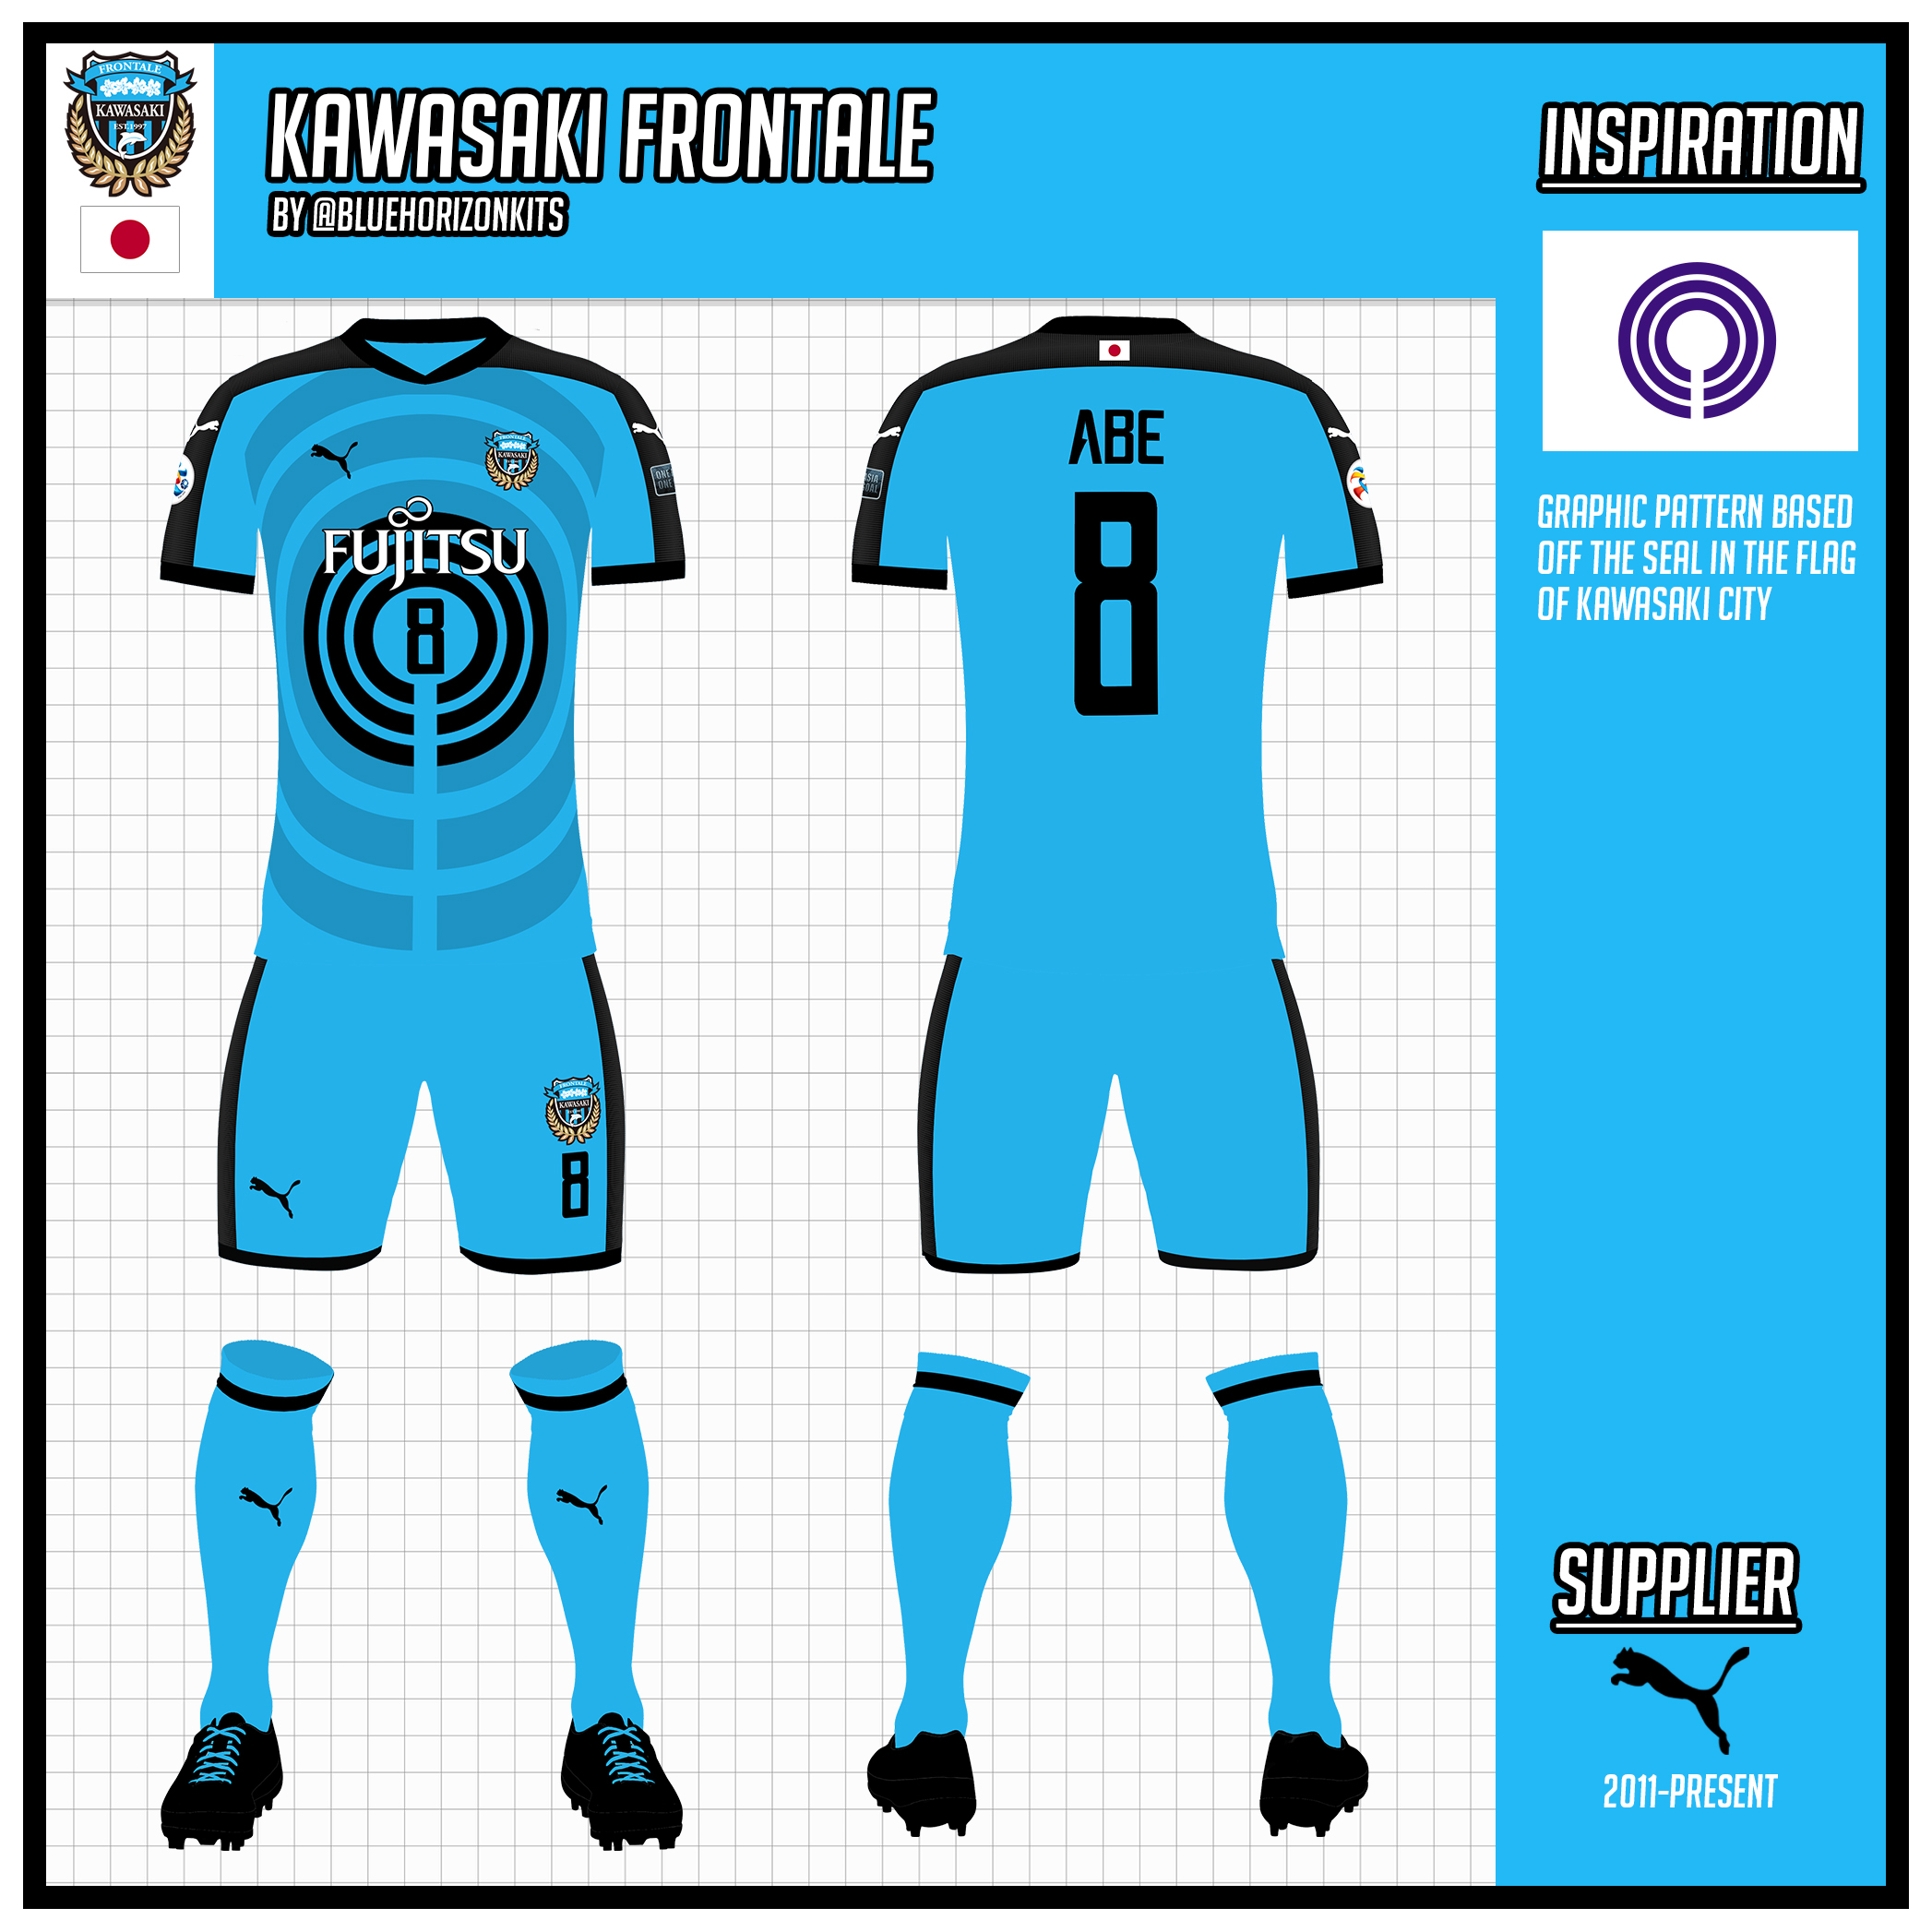 Champions League Asia: Kawasaki Frontale Home Kit (Asian Champions League Version